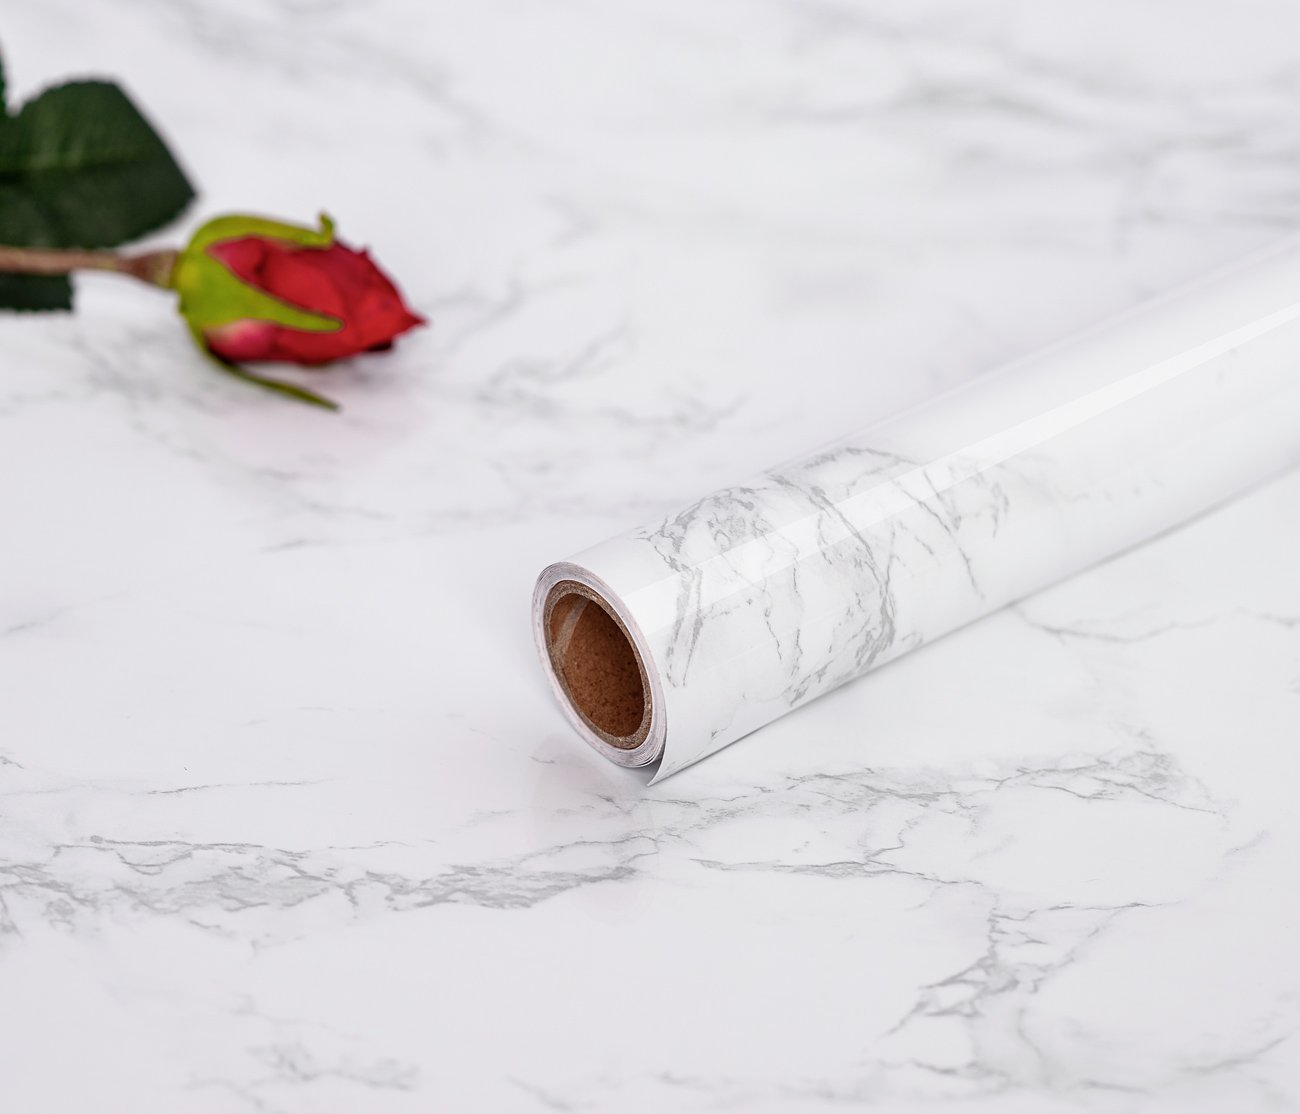 30 cm × 200 cm Marble Contact Paper Grey Granite Self Adhesive Vinyl Film Table Door Sticker Furniture Kitchen Living Room Mould-proof Antifouling Moistureproof Waterproof Oil Proof Self Adhesive Wallpaper Furniture Sticker Vinyl Film for Wall Table Kitch